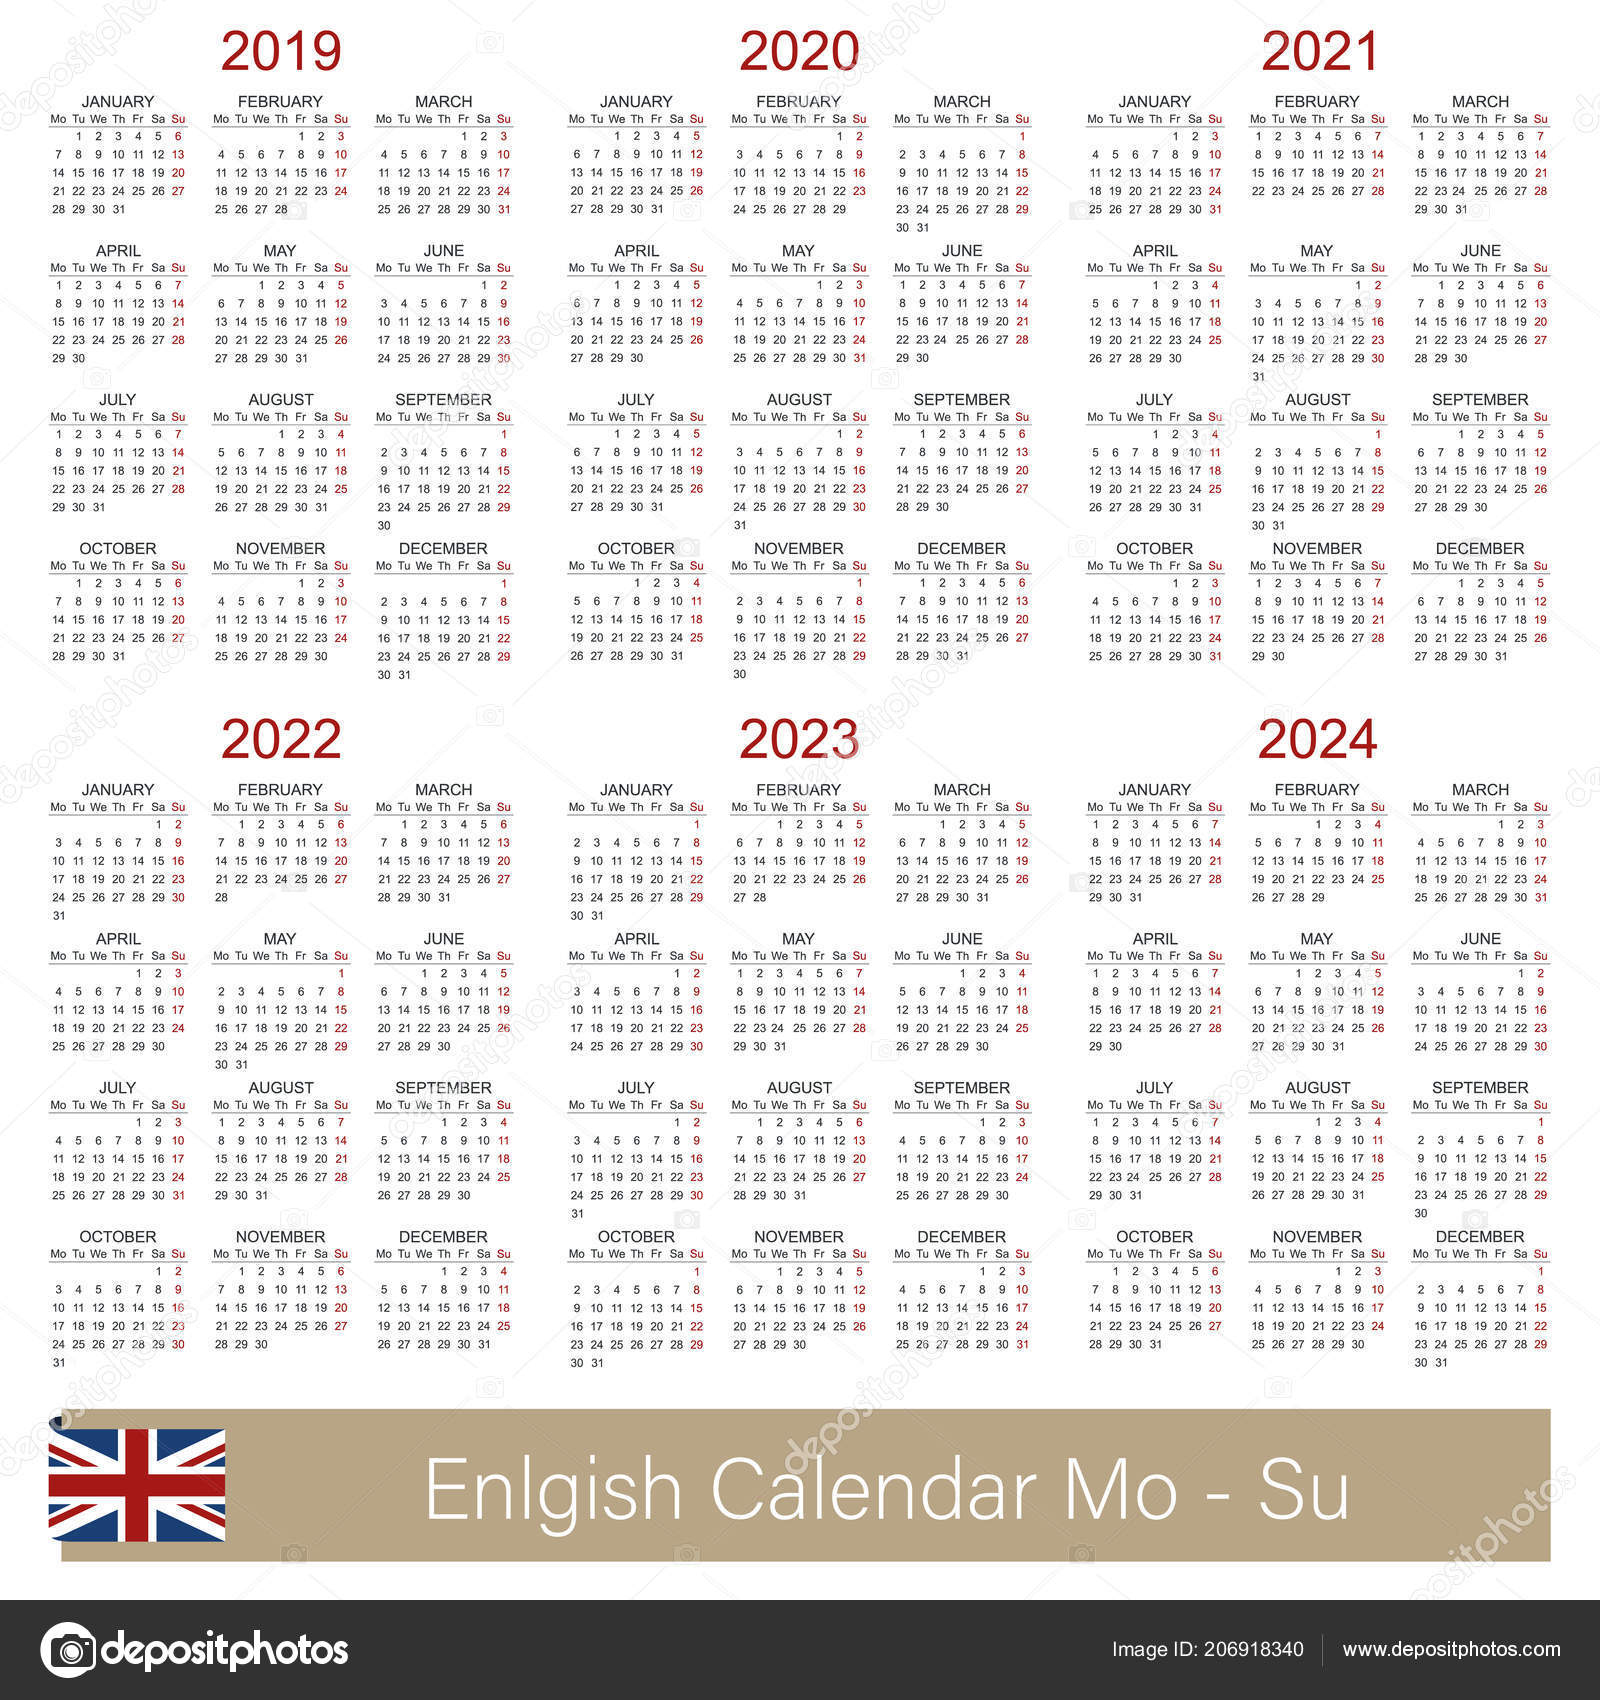 english calendar 2019 2024 week starts on monday simple calendar template for 2019 2020 2021 2022 2023 and 2024 printable calendar templates